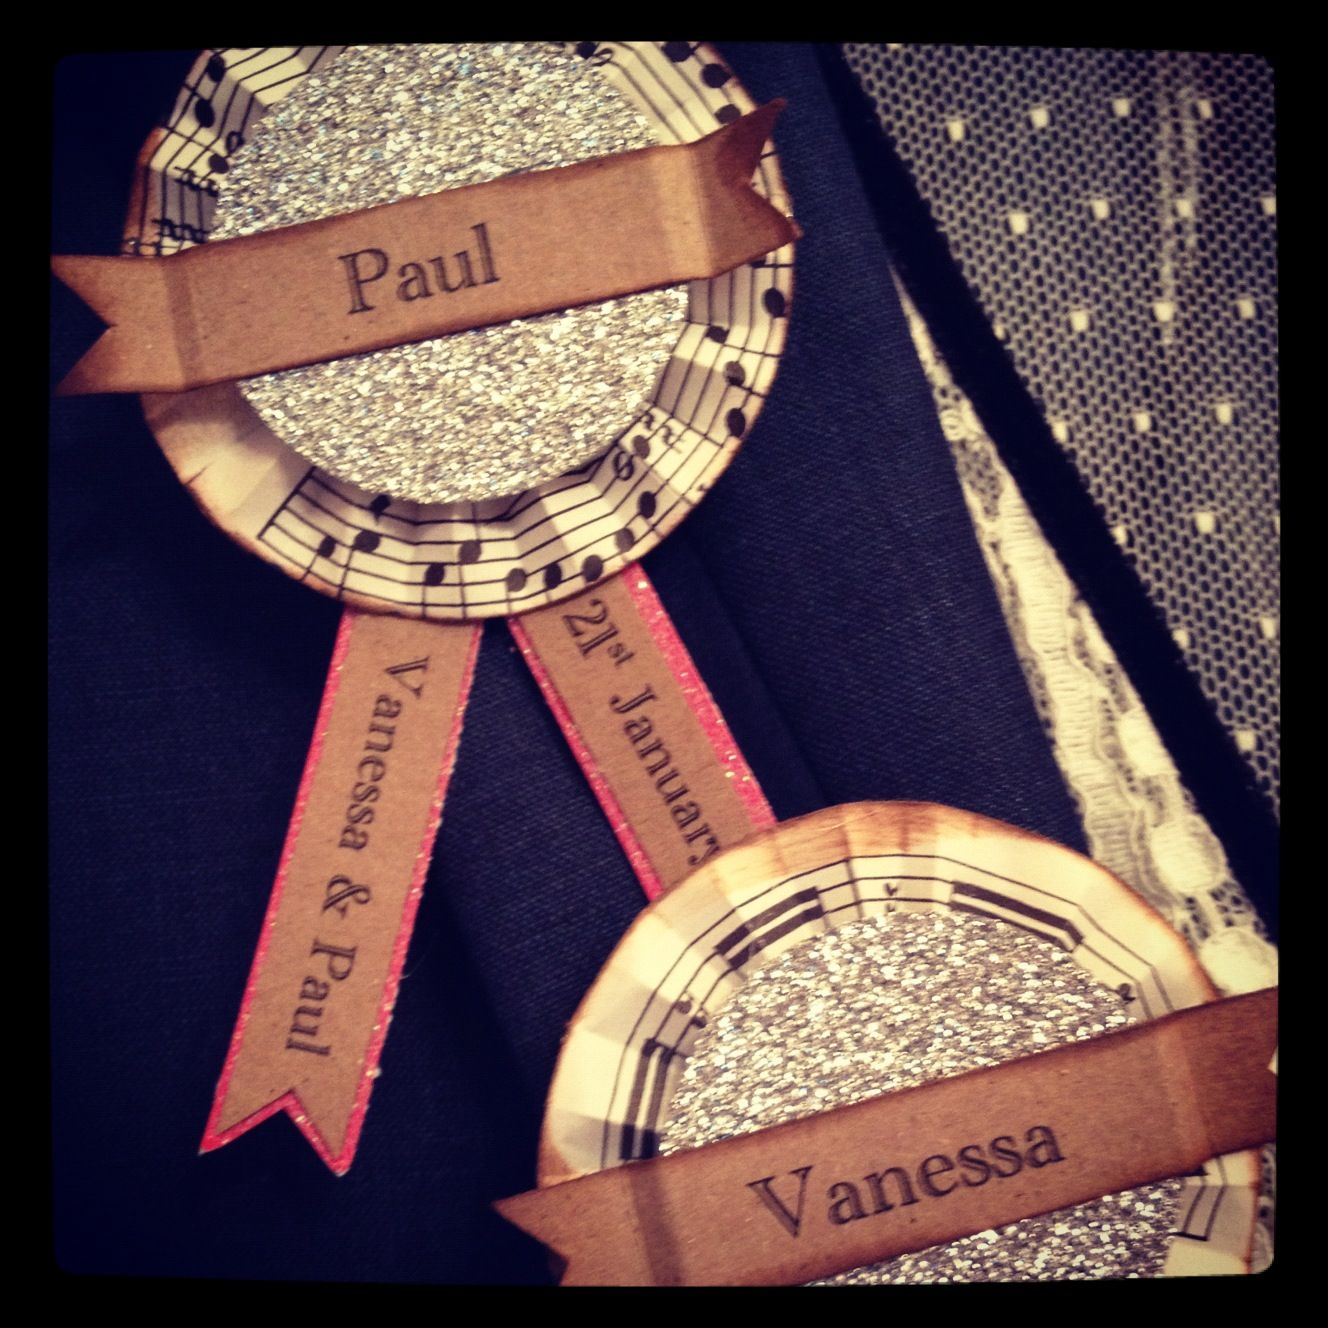 Rosette name badges | VANESSA SHELDRICK & PAUL BOWDEN ...